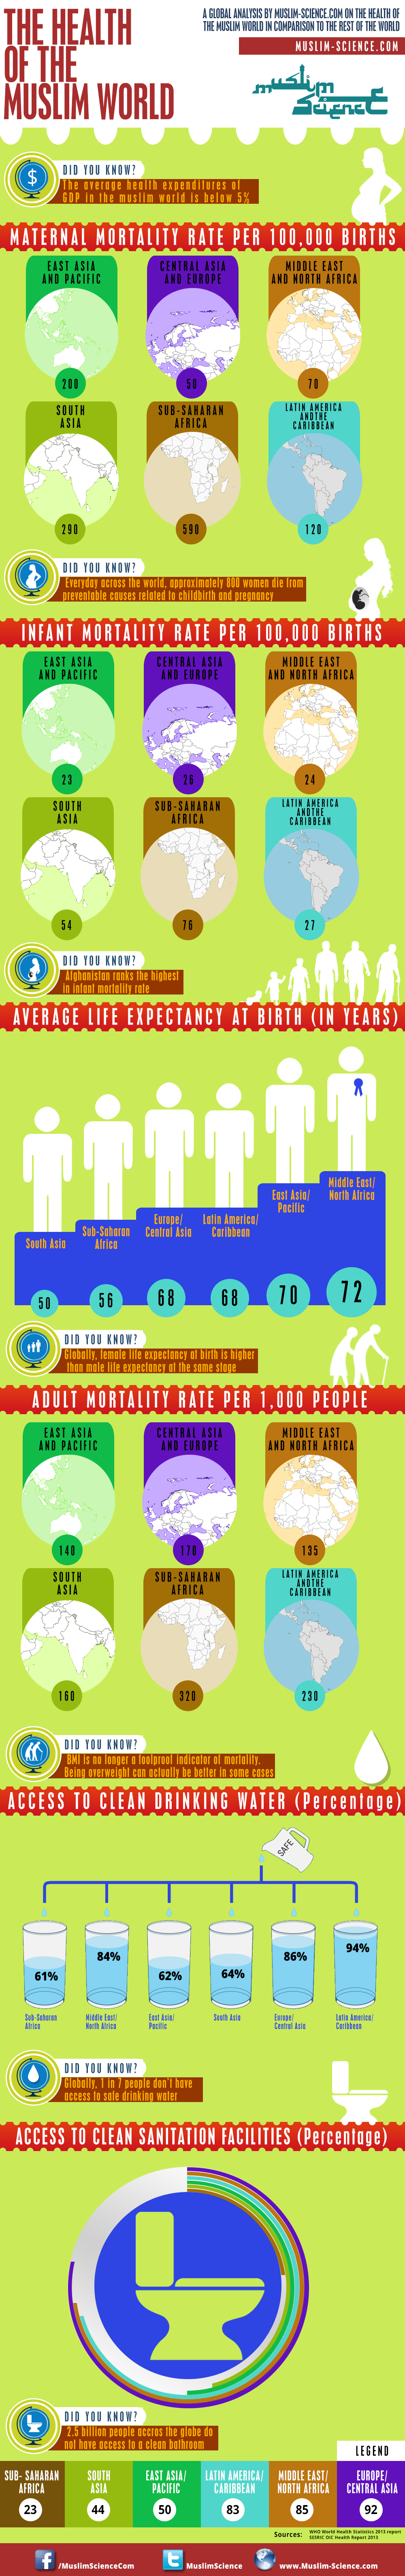 infographic_health issue2_absolute final